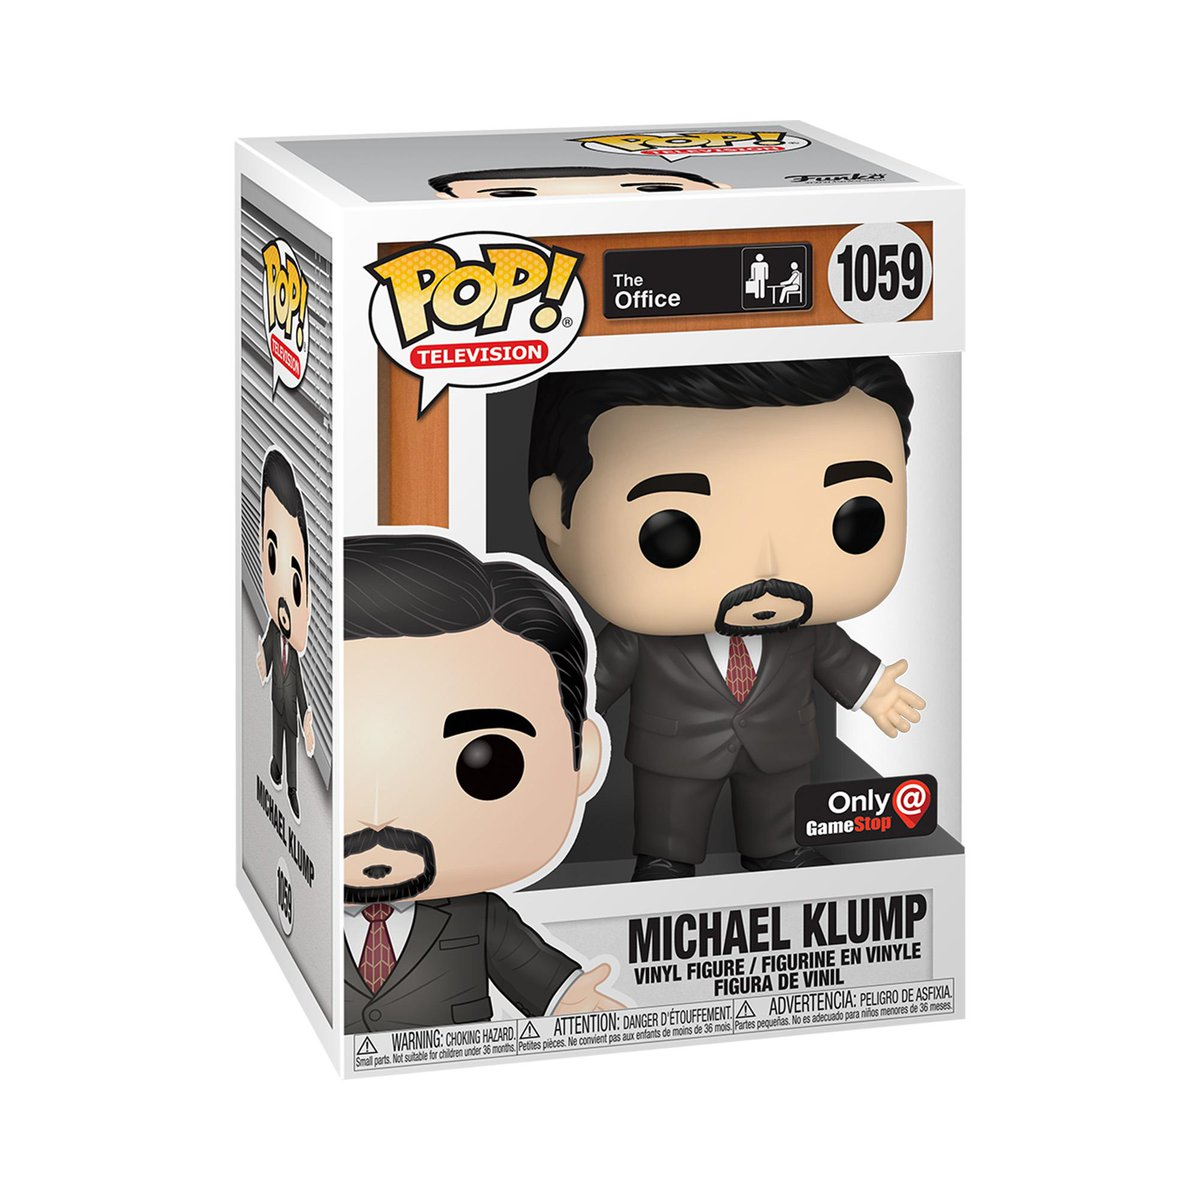 RT & follow @OriginalFunko for the chance to WIN this @GameStop exclusive Michael Klump Pop!  #Funko #Funkogiveaway #Theoffice